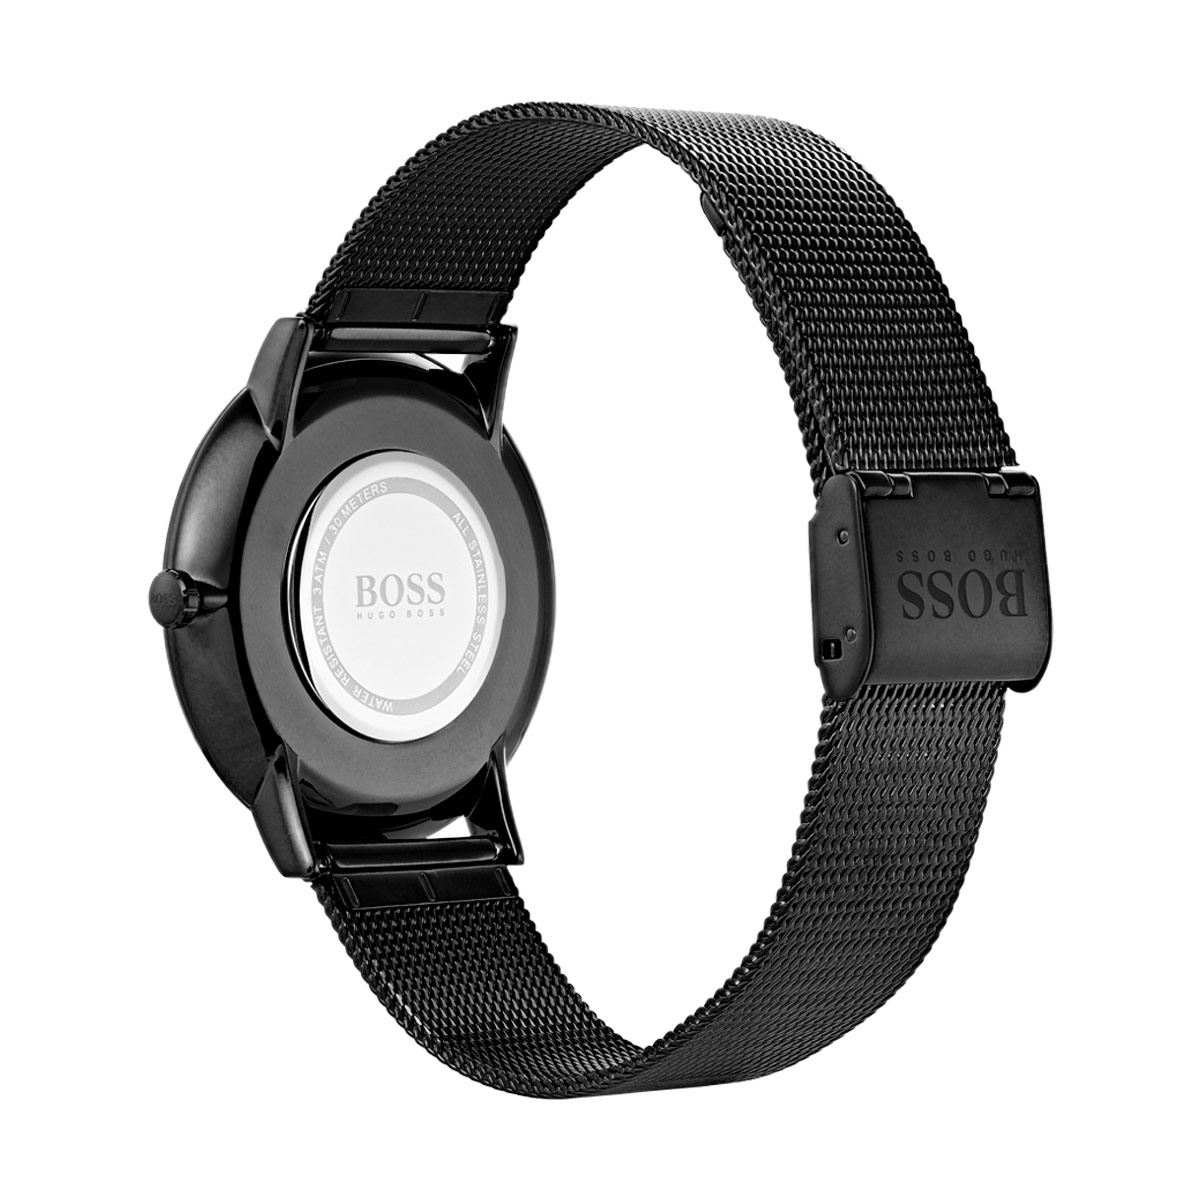 Reloj Boss Horizon para Caballero Color Negro 1513542